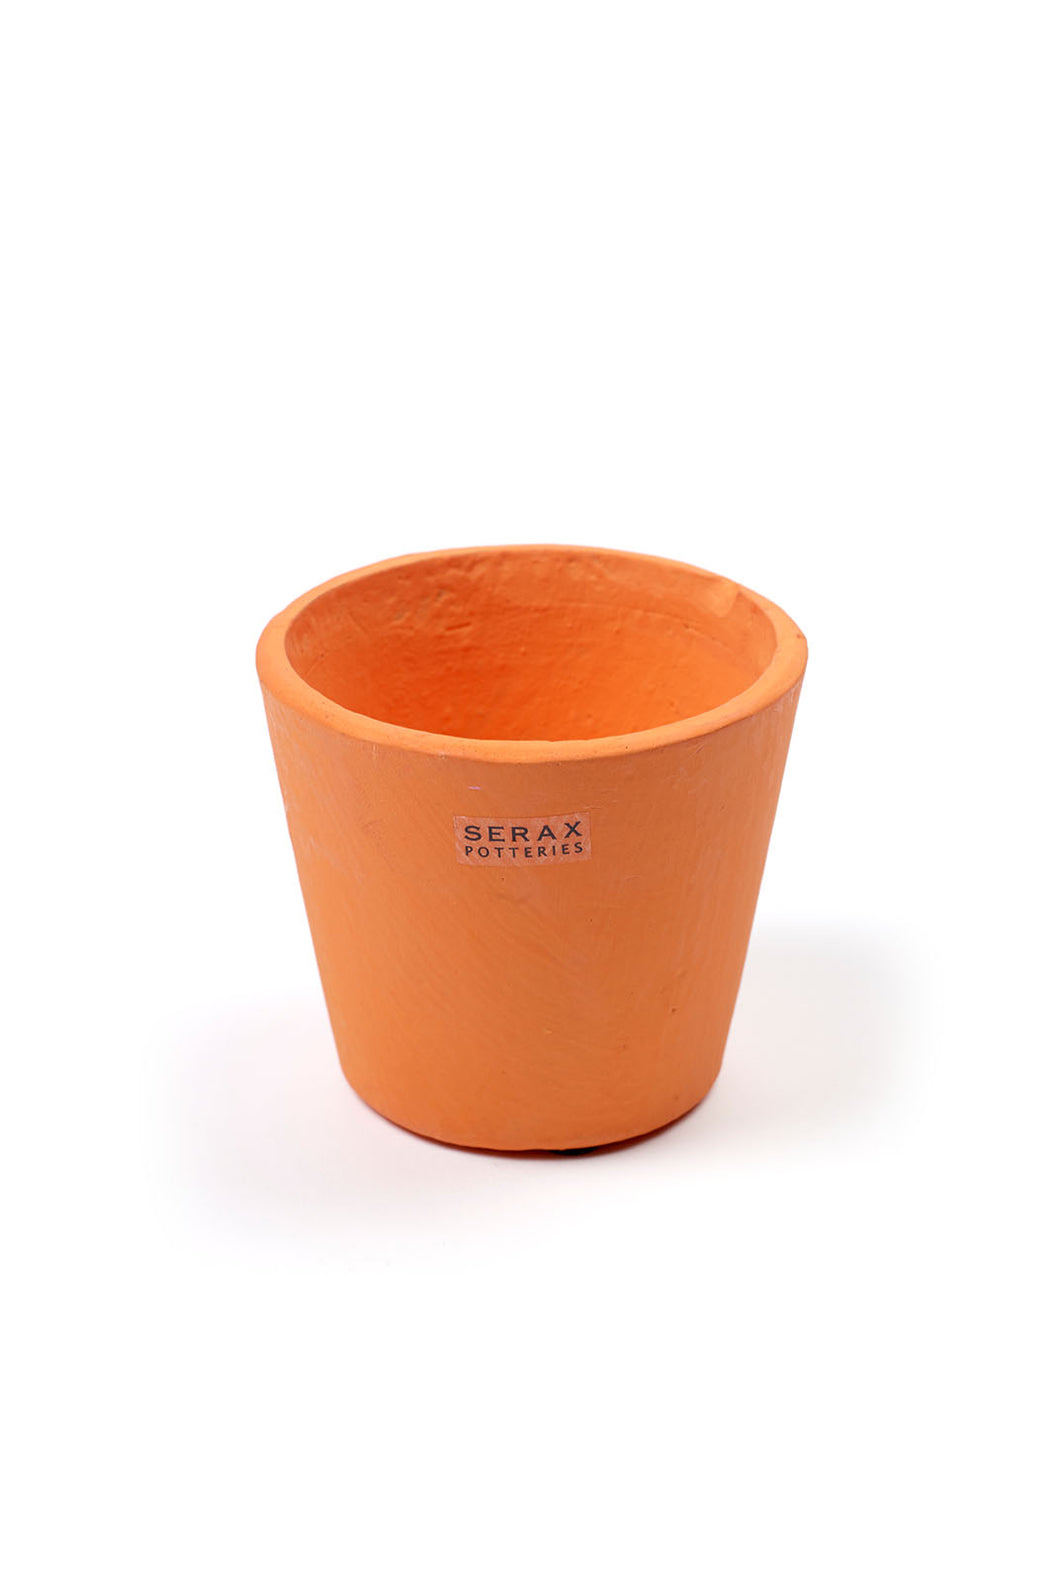 Serax - Pottery Collection - Stoneware Flower Pot - Extra Small - Bright Orange